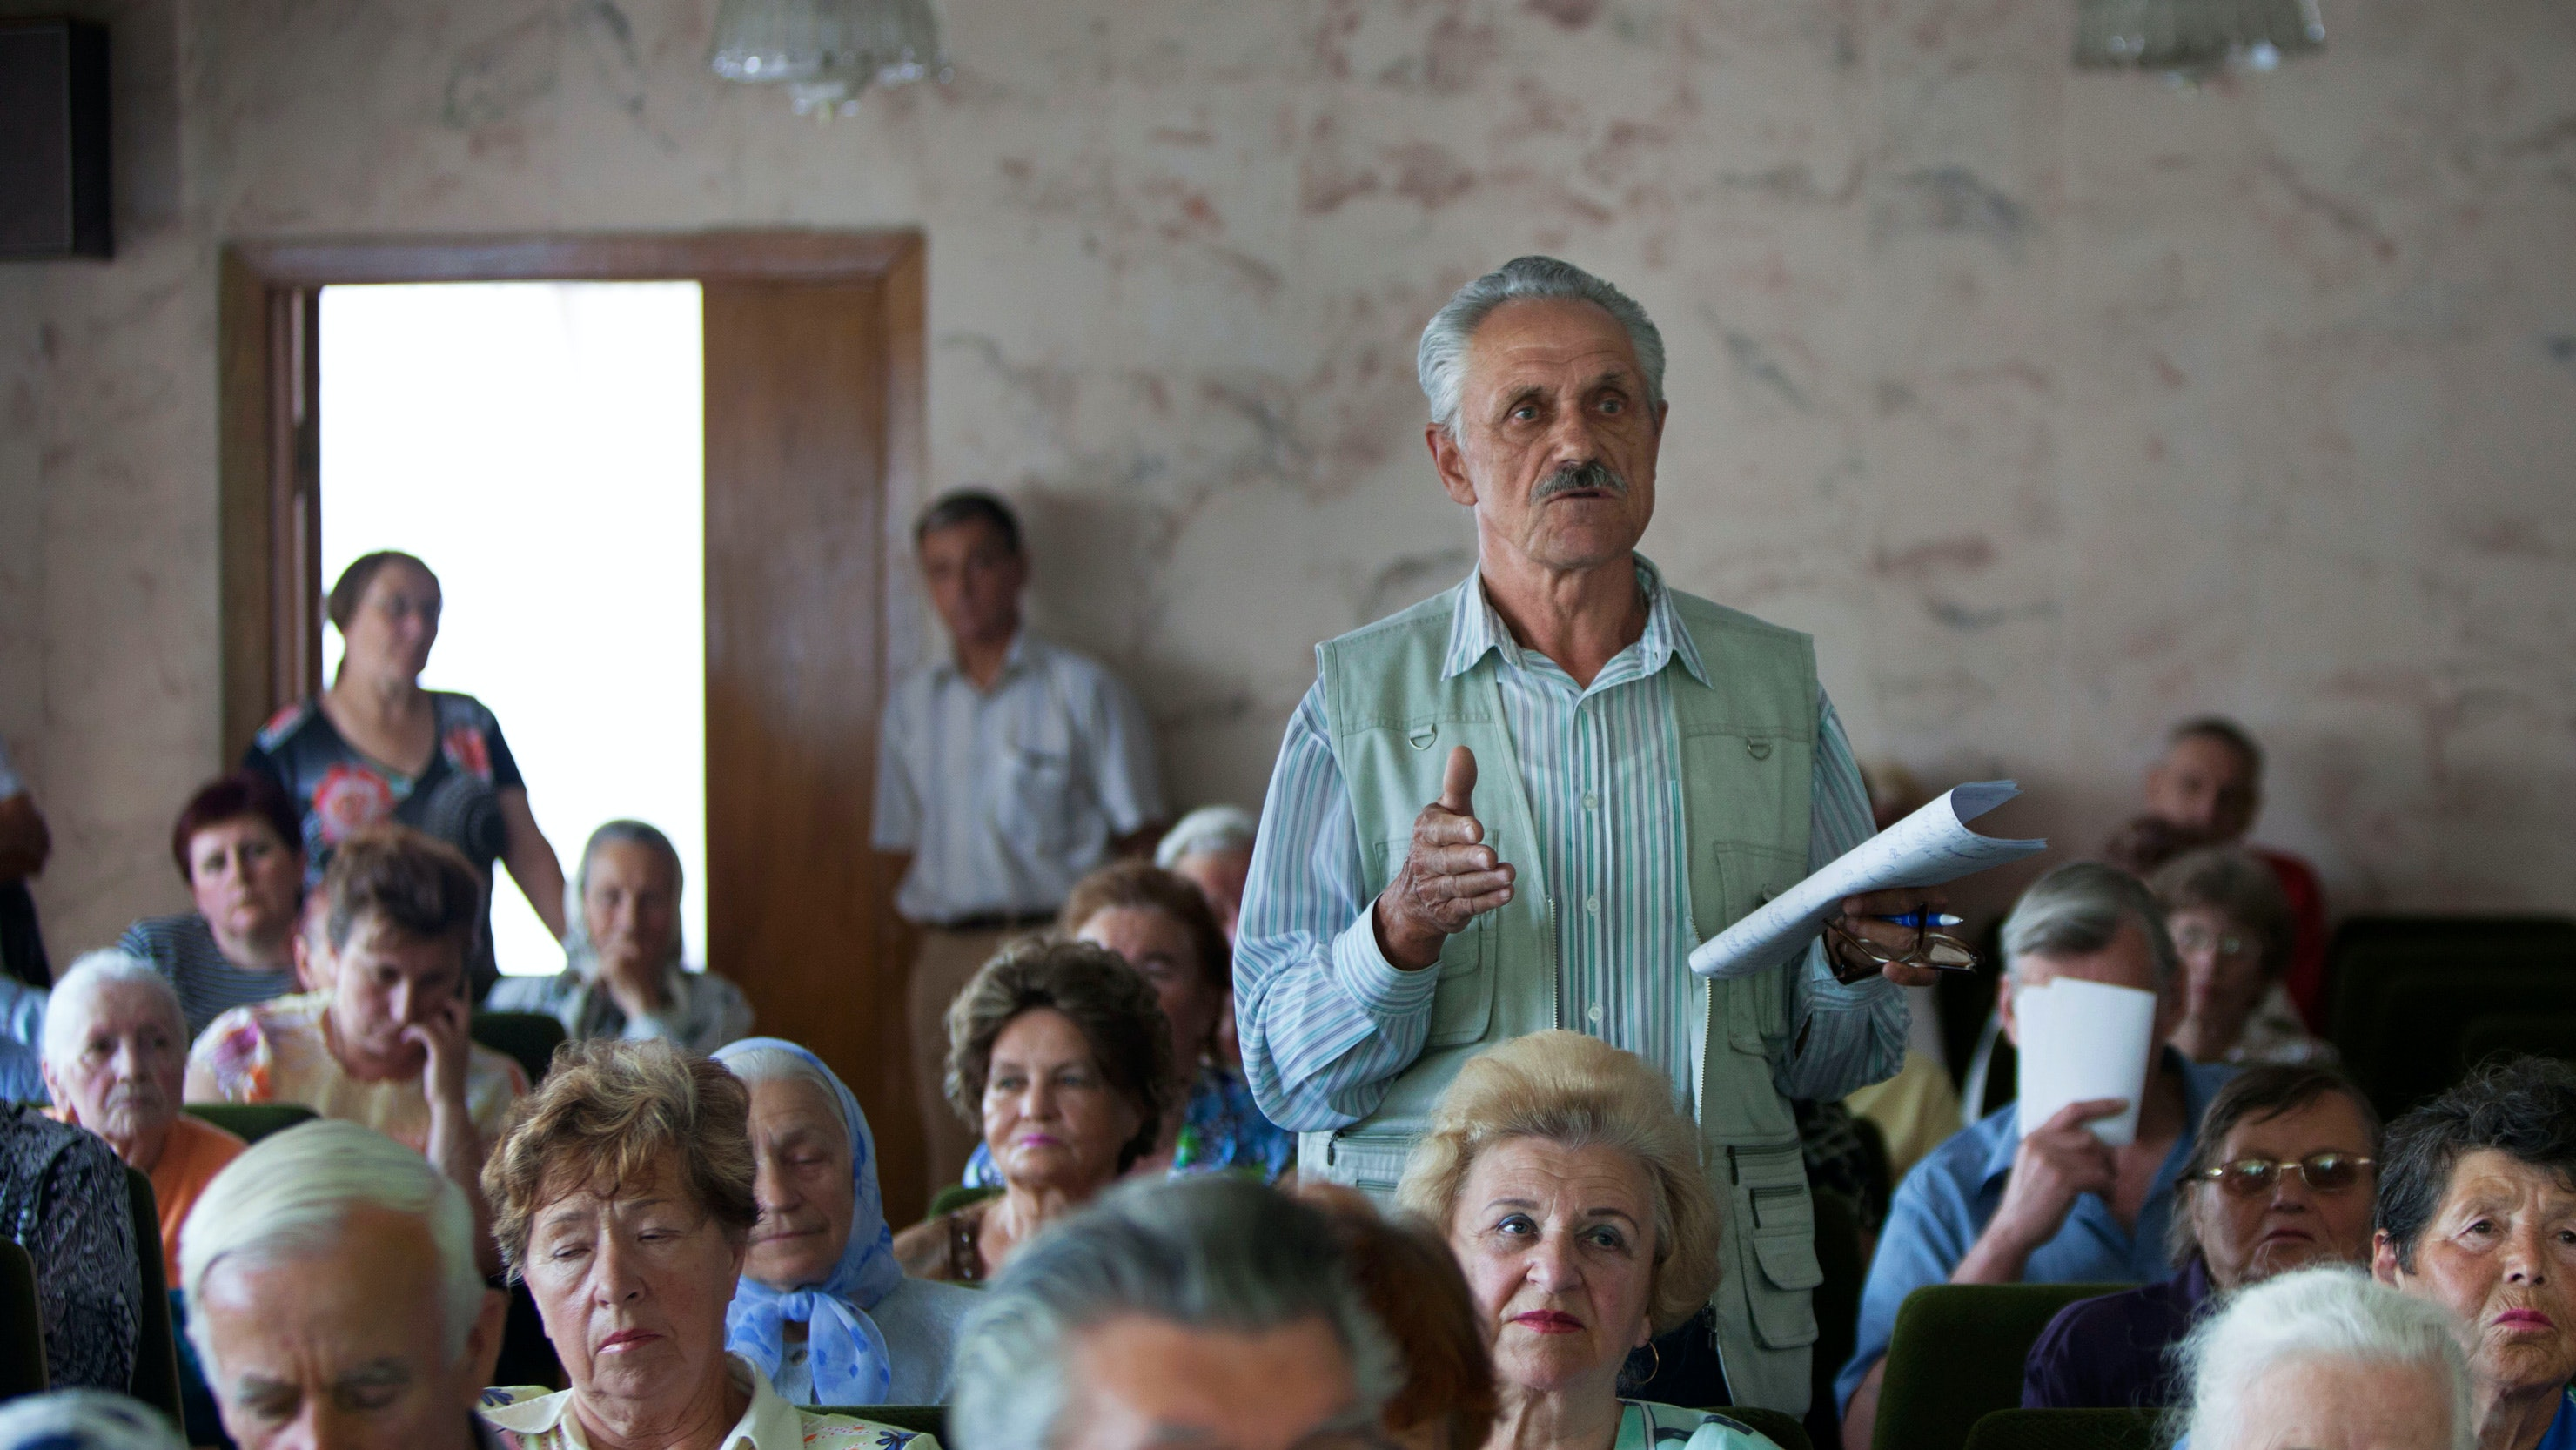 An elderly man stands above a crowd in Ukraine